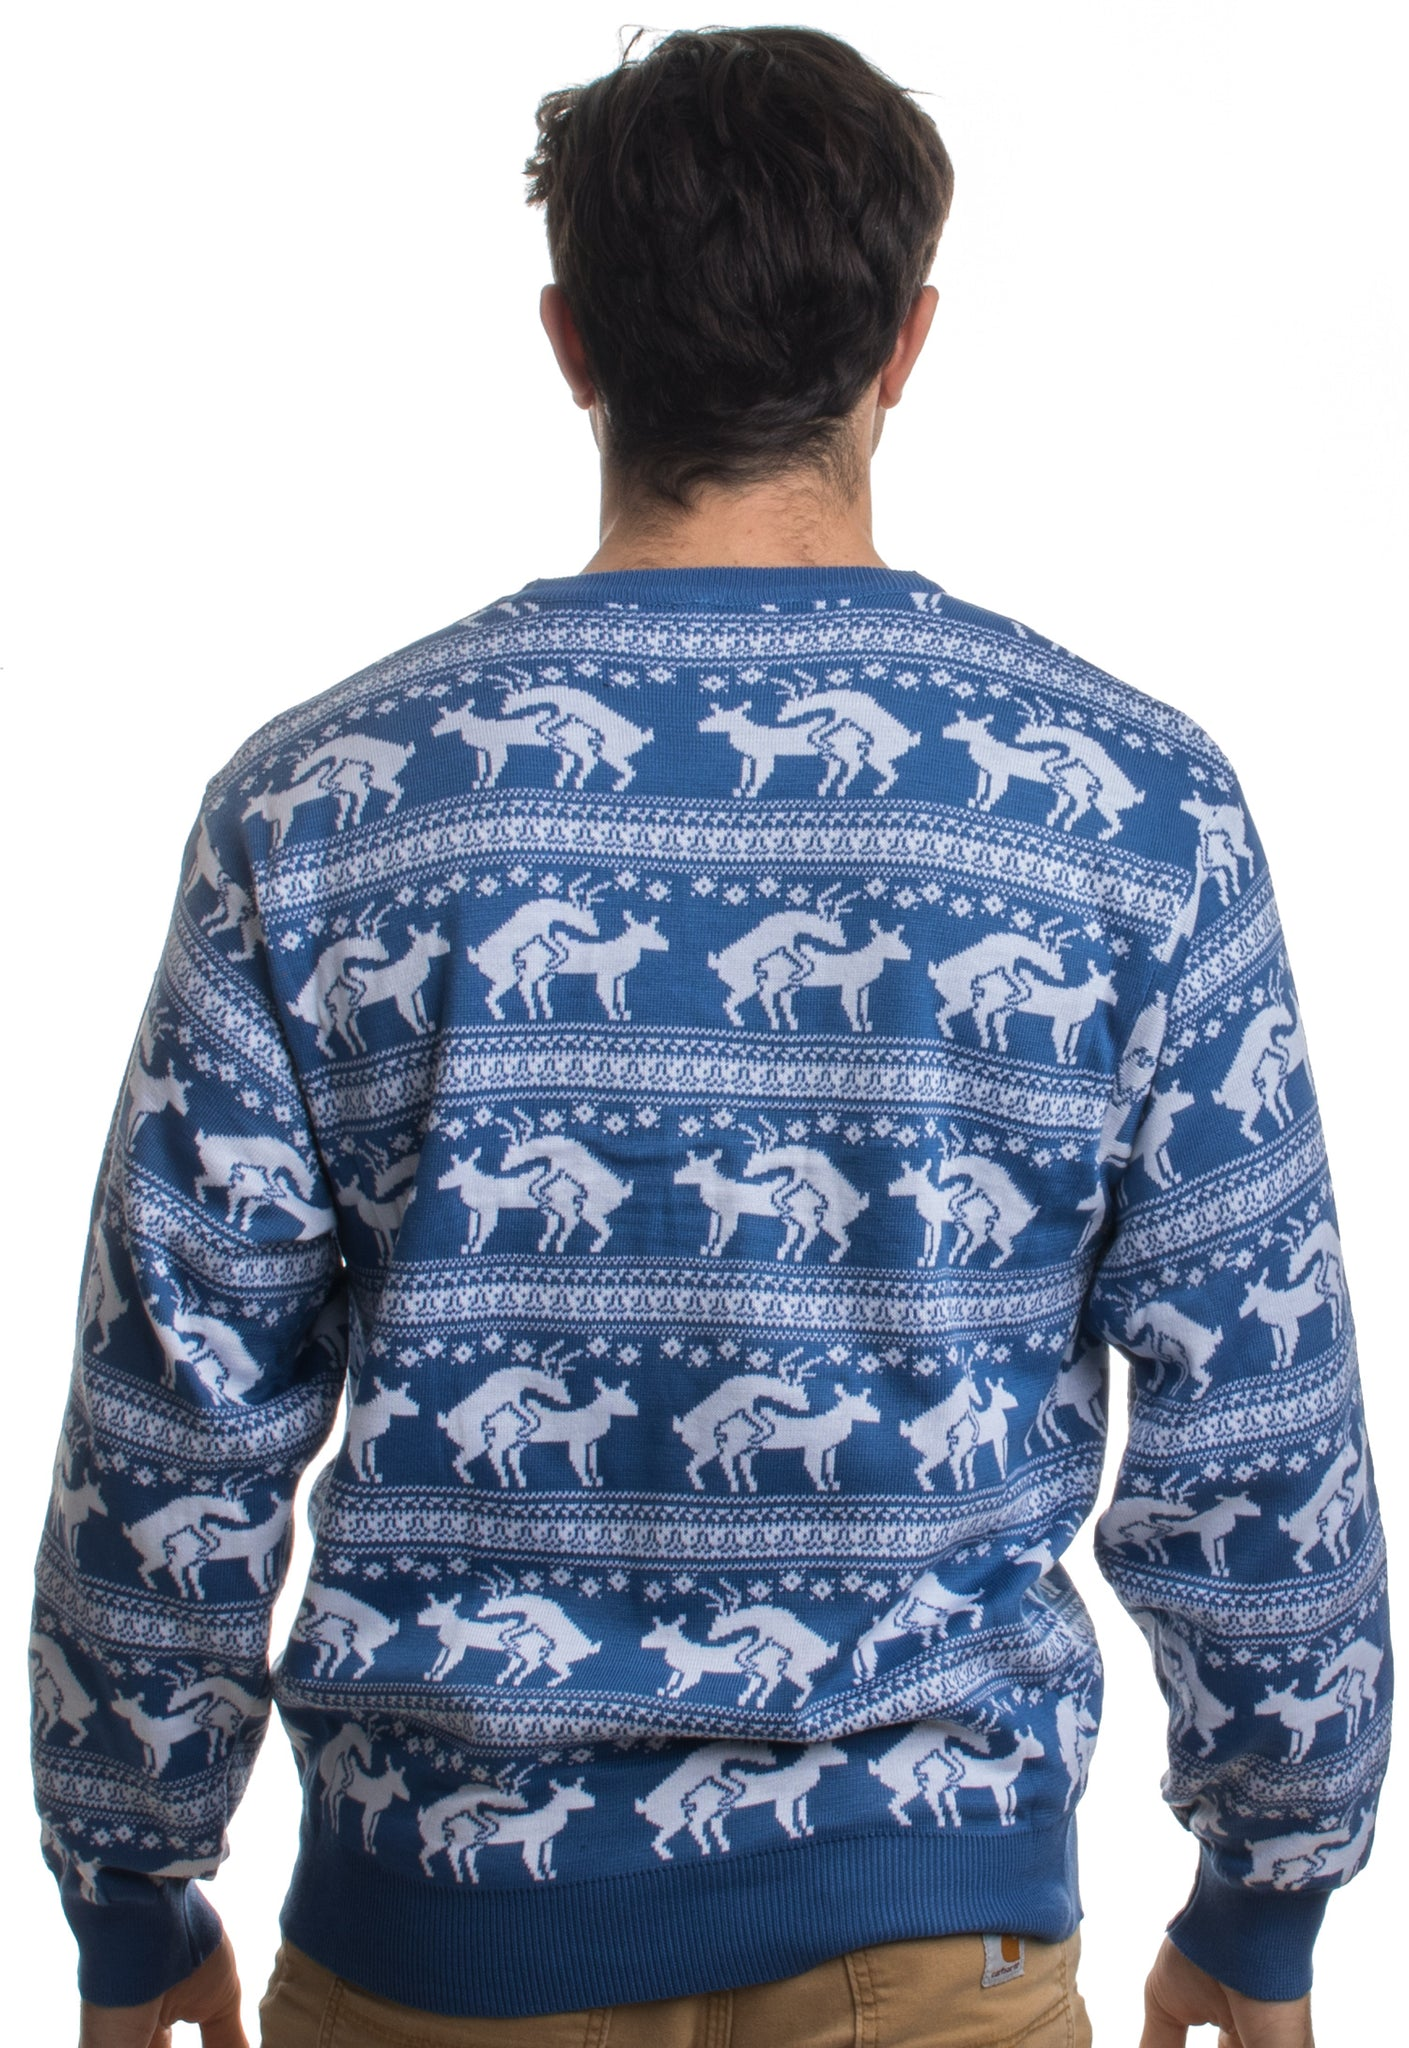 a70c1431263 ... Blue Reindeer Humping Ugly Christmas Sweater w  Holiday Insertion    Christmas Dongs ...